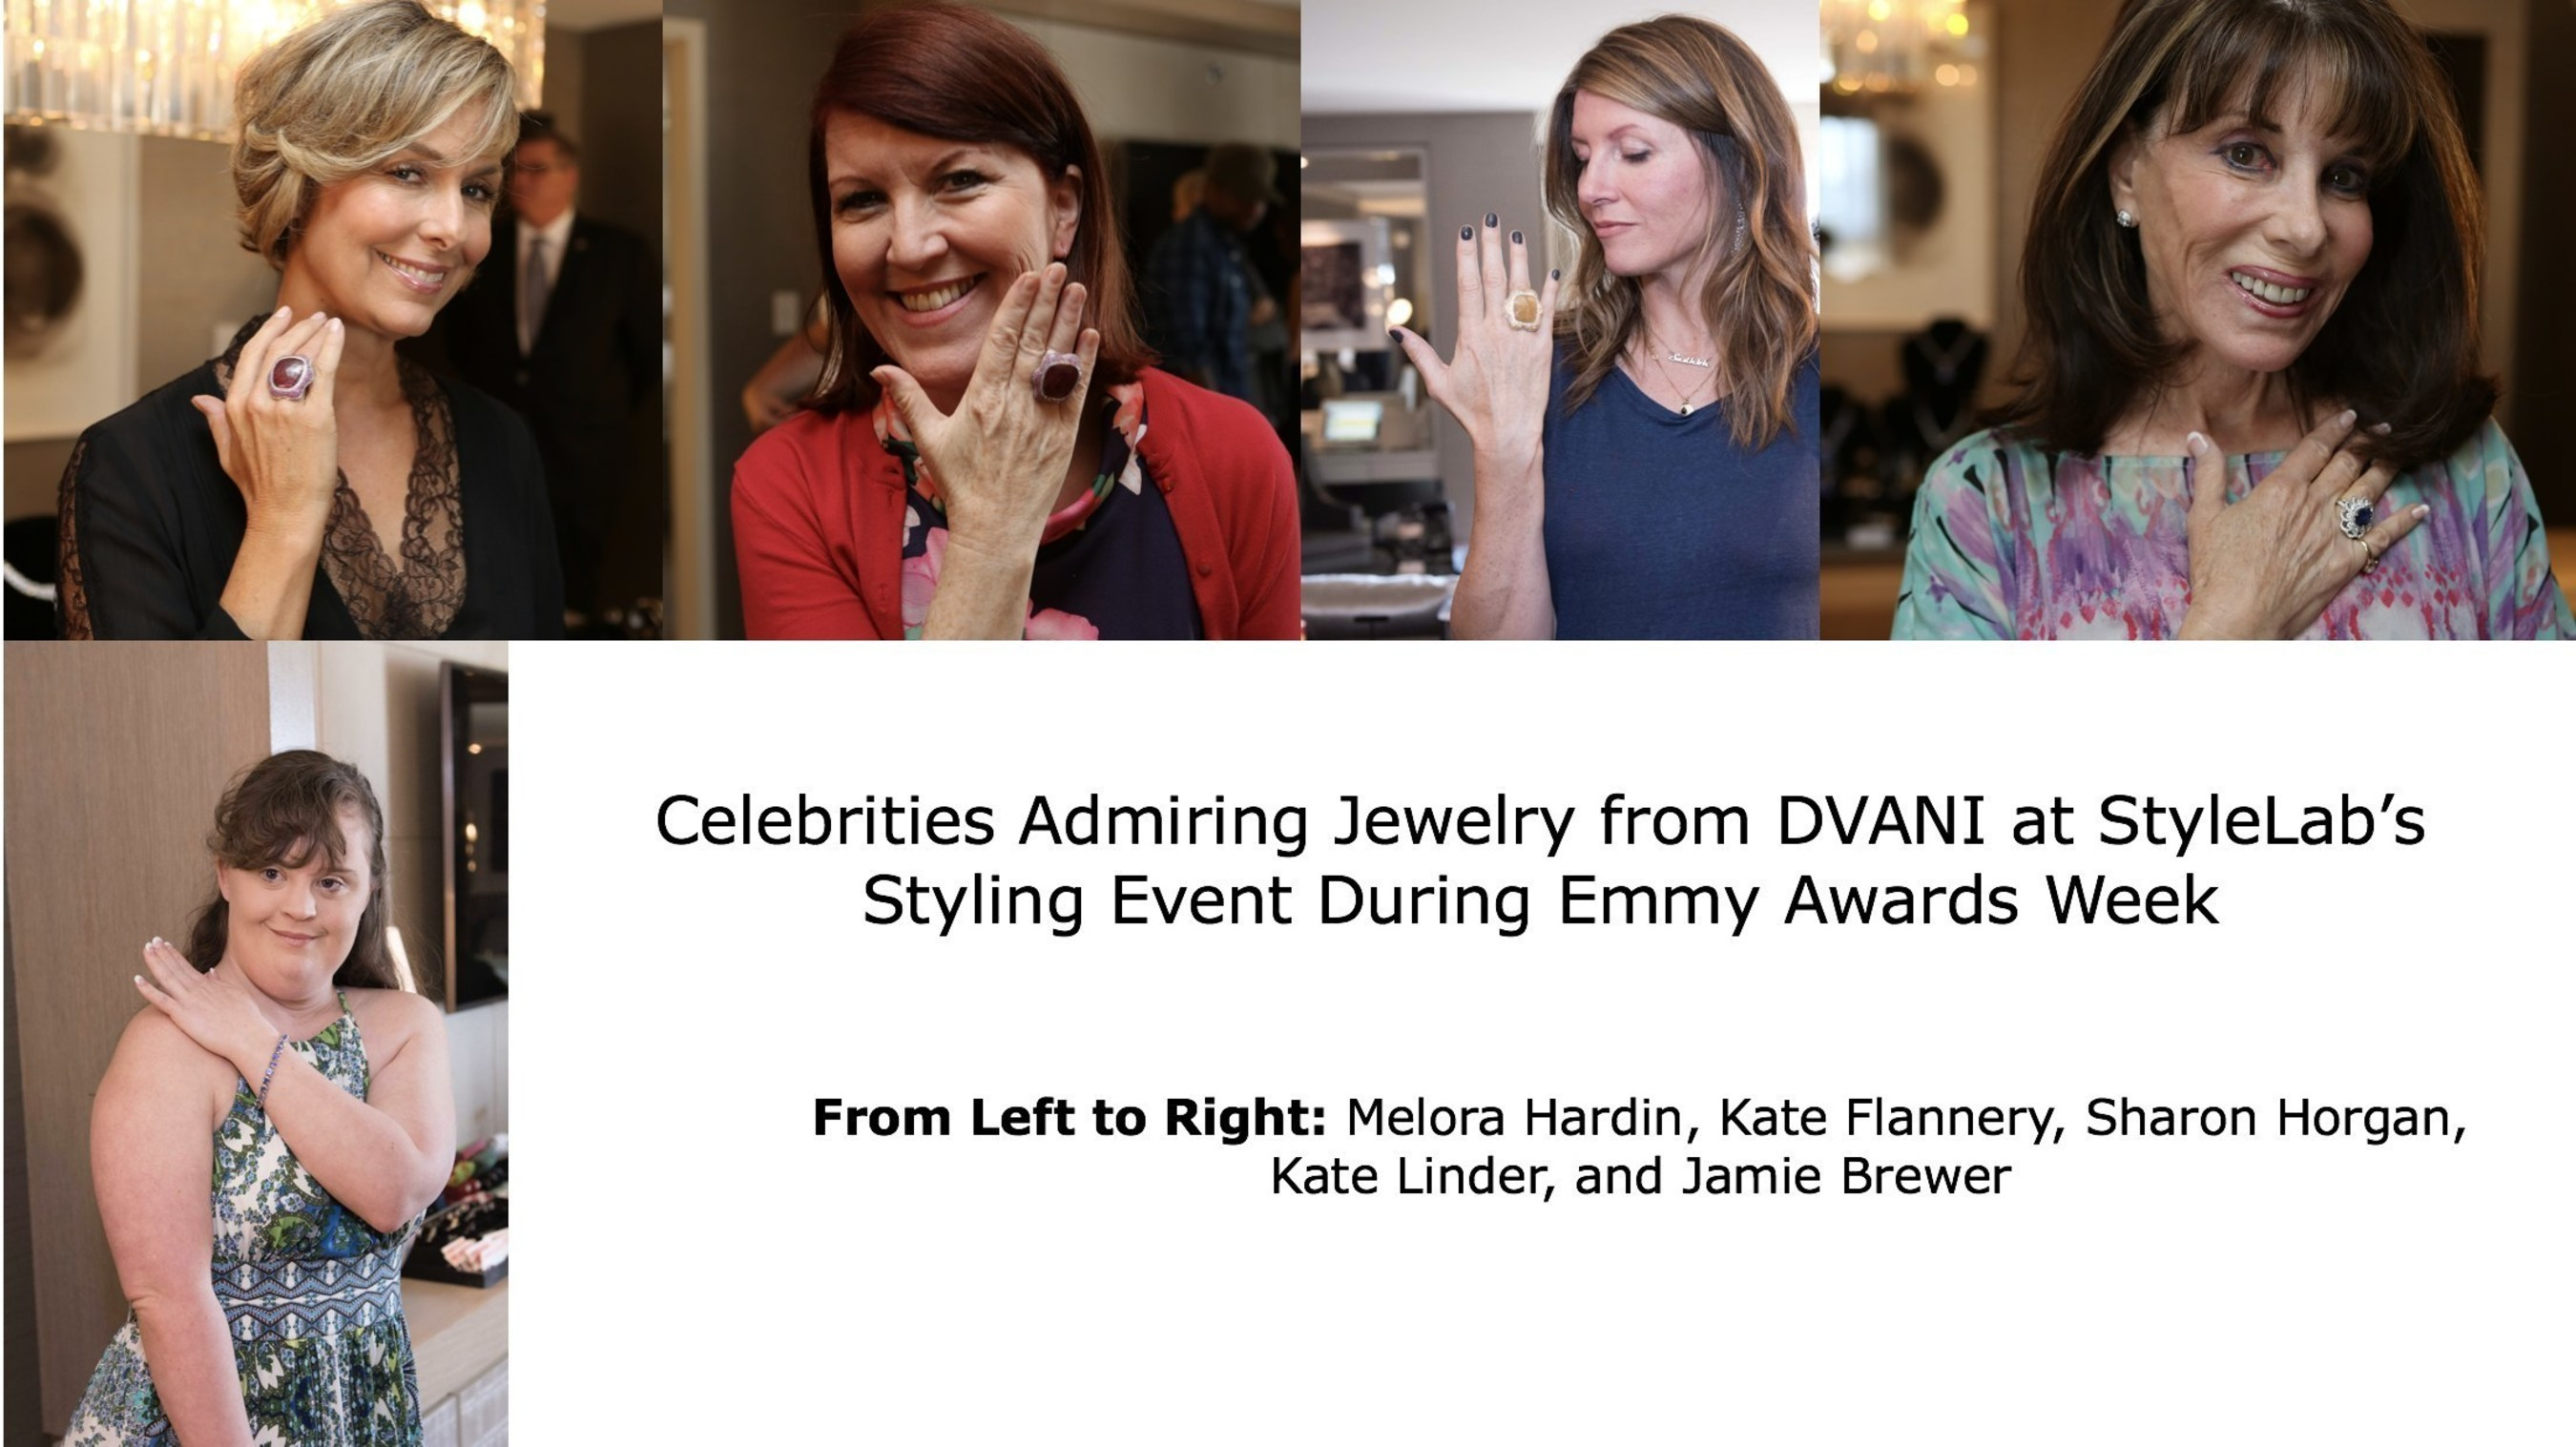 Celebrities Previewed Jewelry From DVANI At StyleLab's Styling Event During Emmy Awards Week